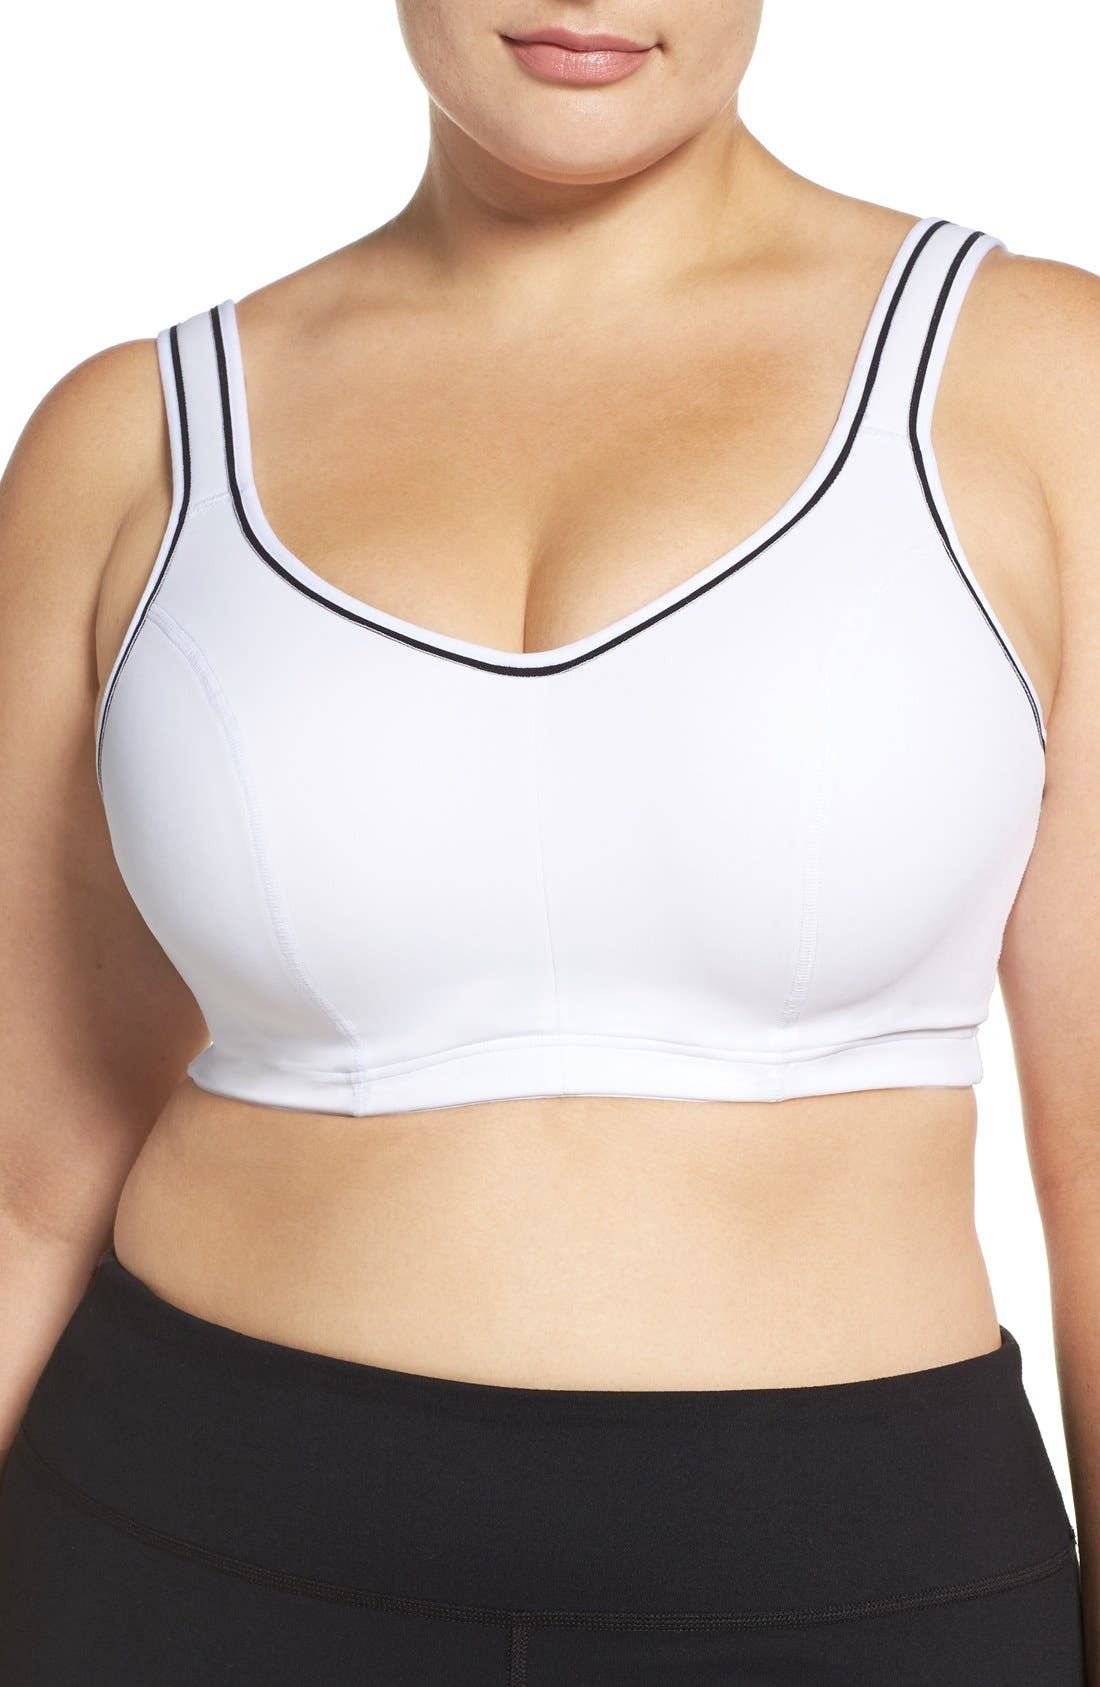 'Gabriella' Underwire Sports Bra,                         Main,                         color, White